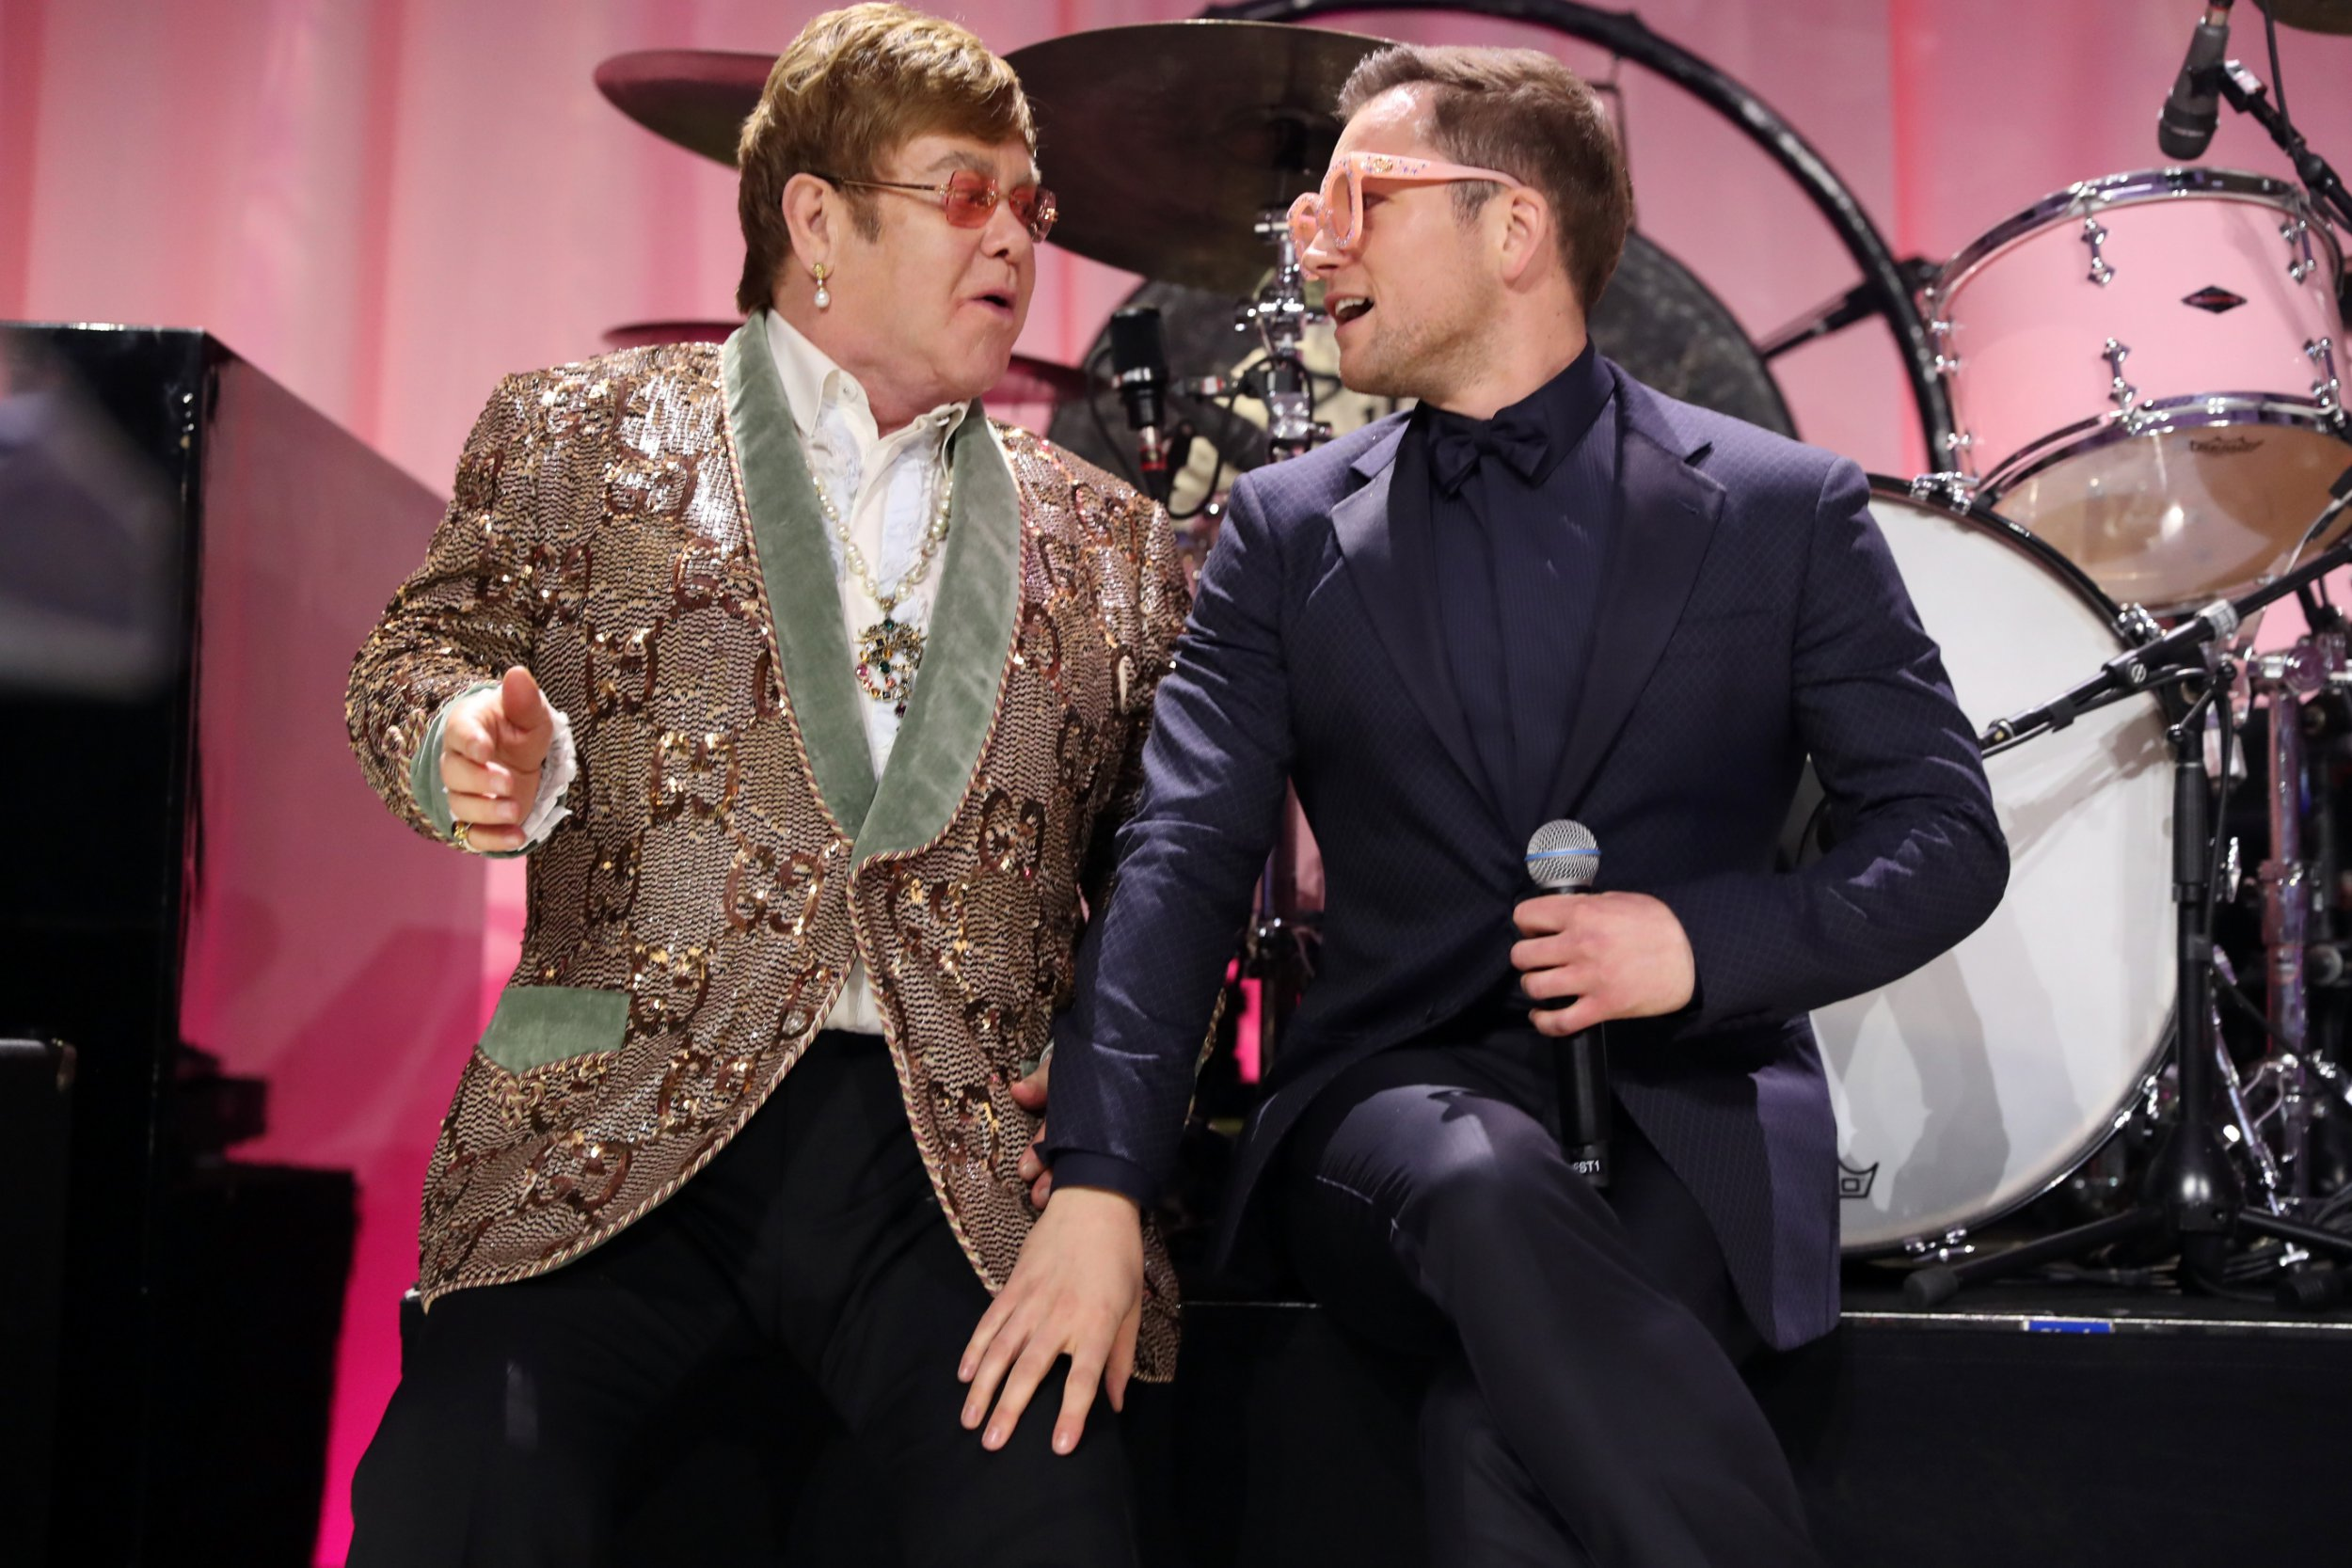 WEST HOLLYWOOD, CA - FEBRUARY 24: Sir Elton John and Taron Egerton perform onstage during the 27th annual Elton John AIDS Foundation Academy Awards Viewing Party sponsored by IMDb and Neuro Drinks celebrating EJAF and the 91st Academy Awards on February 24, 2019 in West Hollywood, California. (Photo by Rich Fury/Getty Images for EJAF)